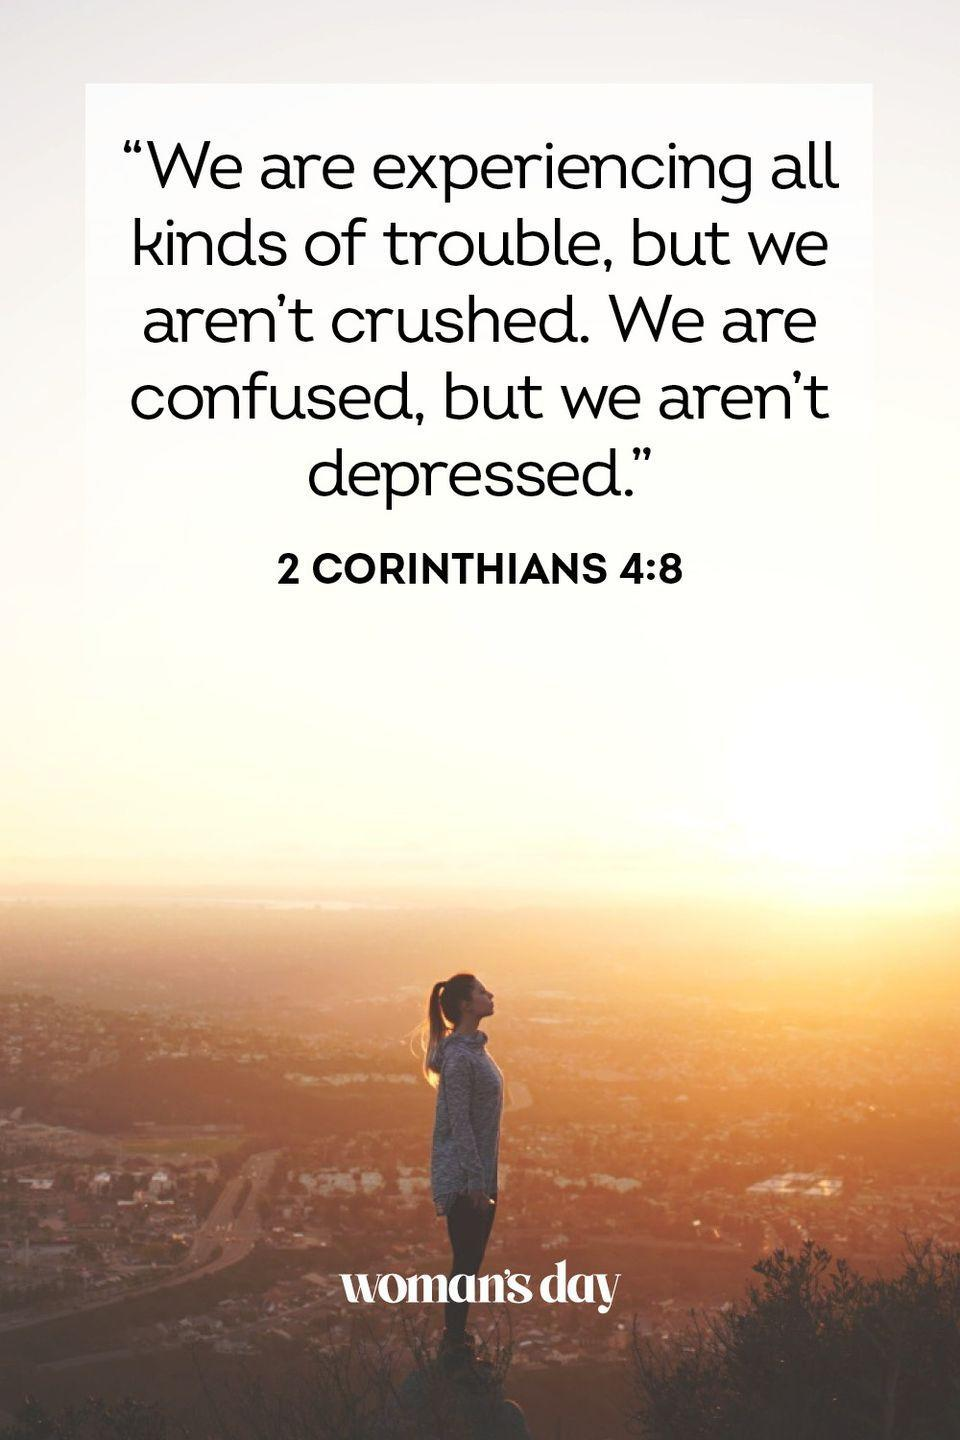 """<p>""""We are experiencing all kinds of trouble, but we aren't crushed. We are confused, but we aren't depressed."""" — 2 Corinthians 4:8</p><p><strong>The Good News: </strong>Even when it feels like we can't push on anymore, we must remember that nothing can break us forever when we have God looking out for us.</p>"""